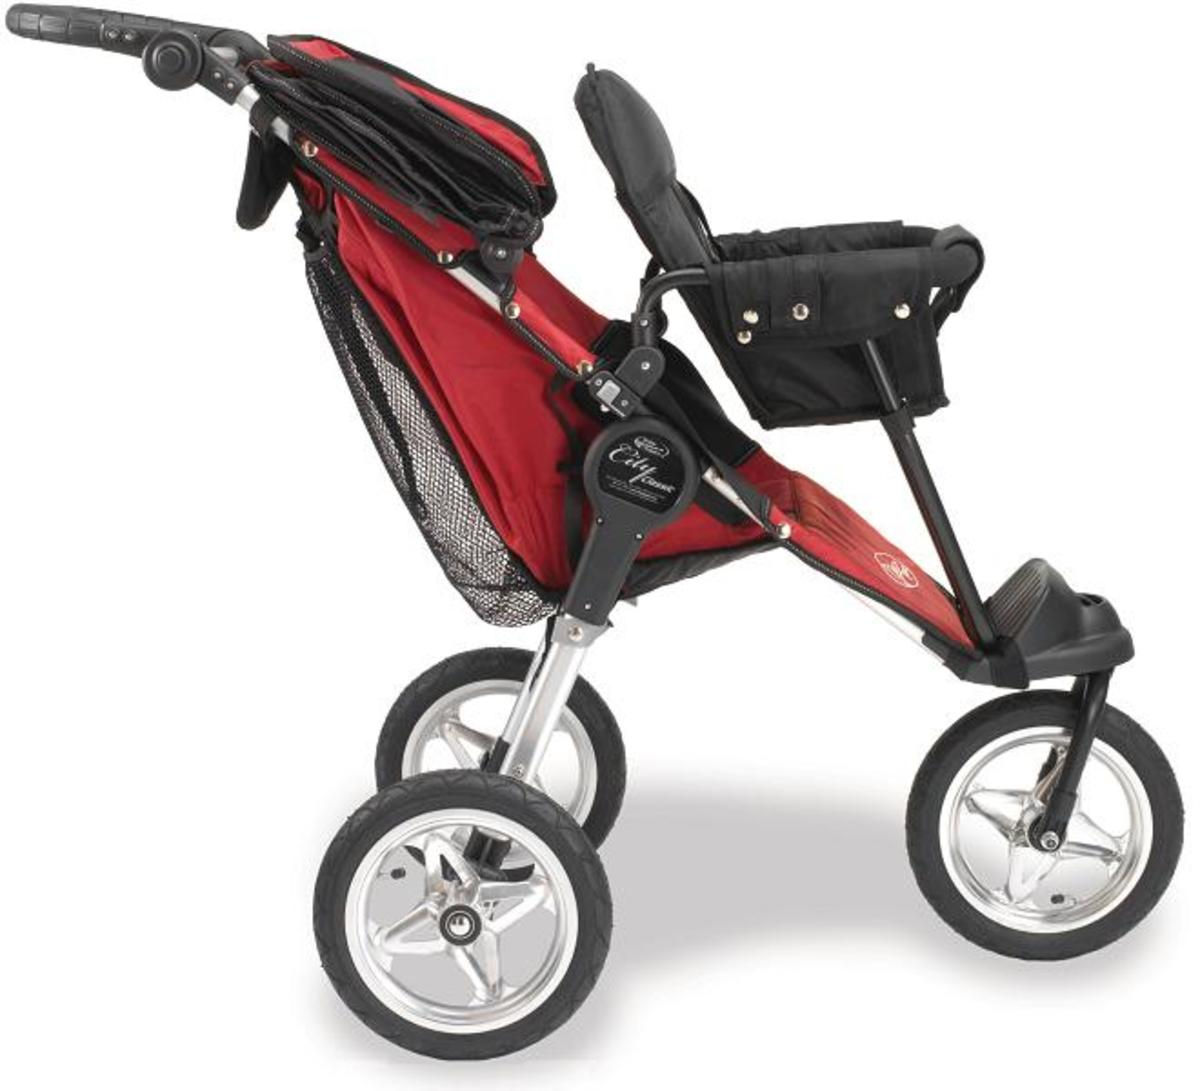 Baby Jogger Jump Seats Recalled Due to Injury